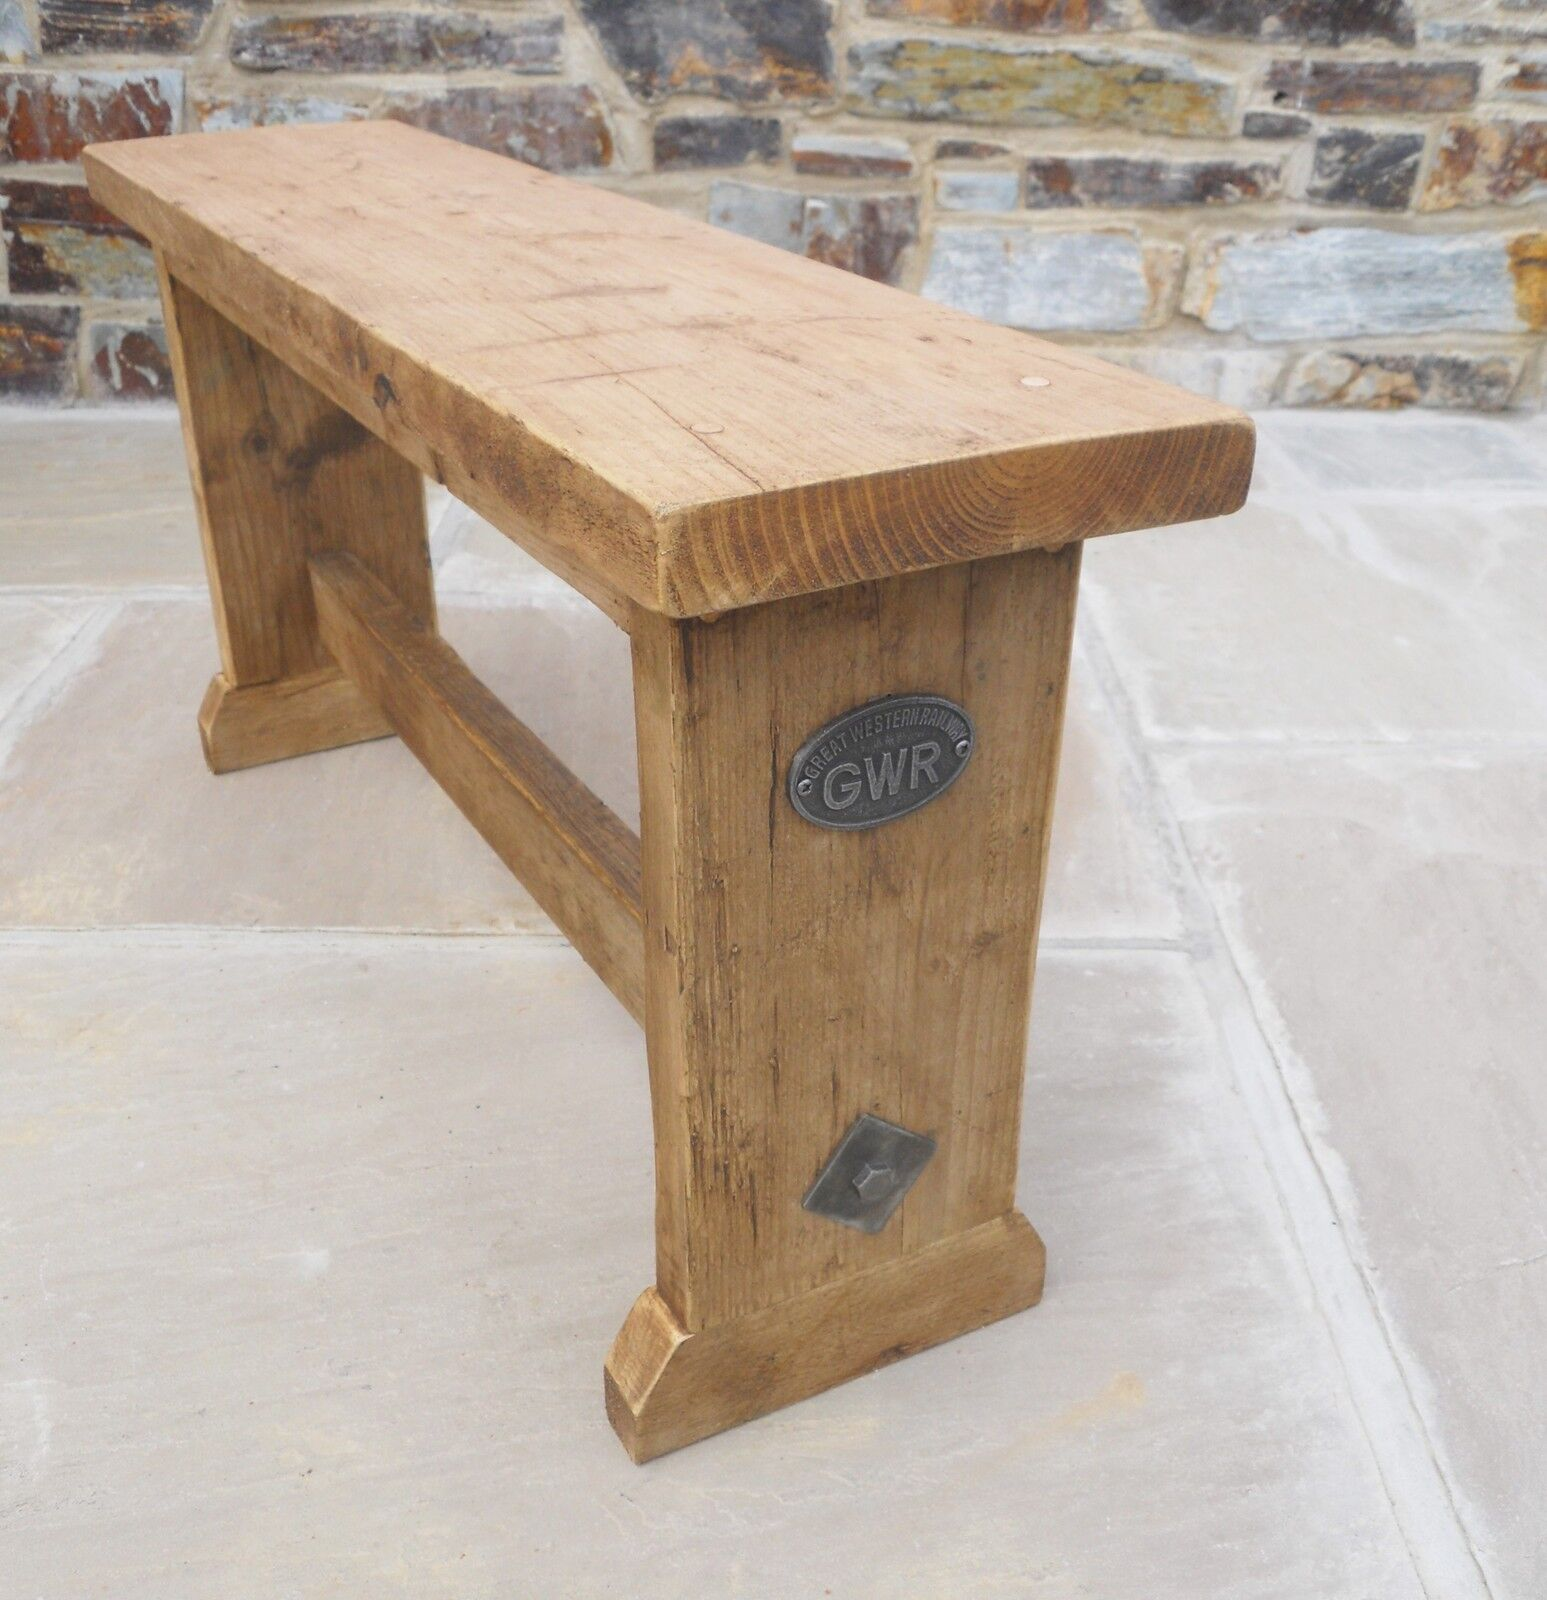 Hand Made Old Pine Reclaimed Wooden Bench Seat Kitchen Dining GWR Design